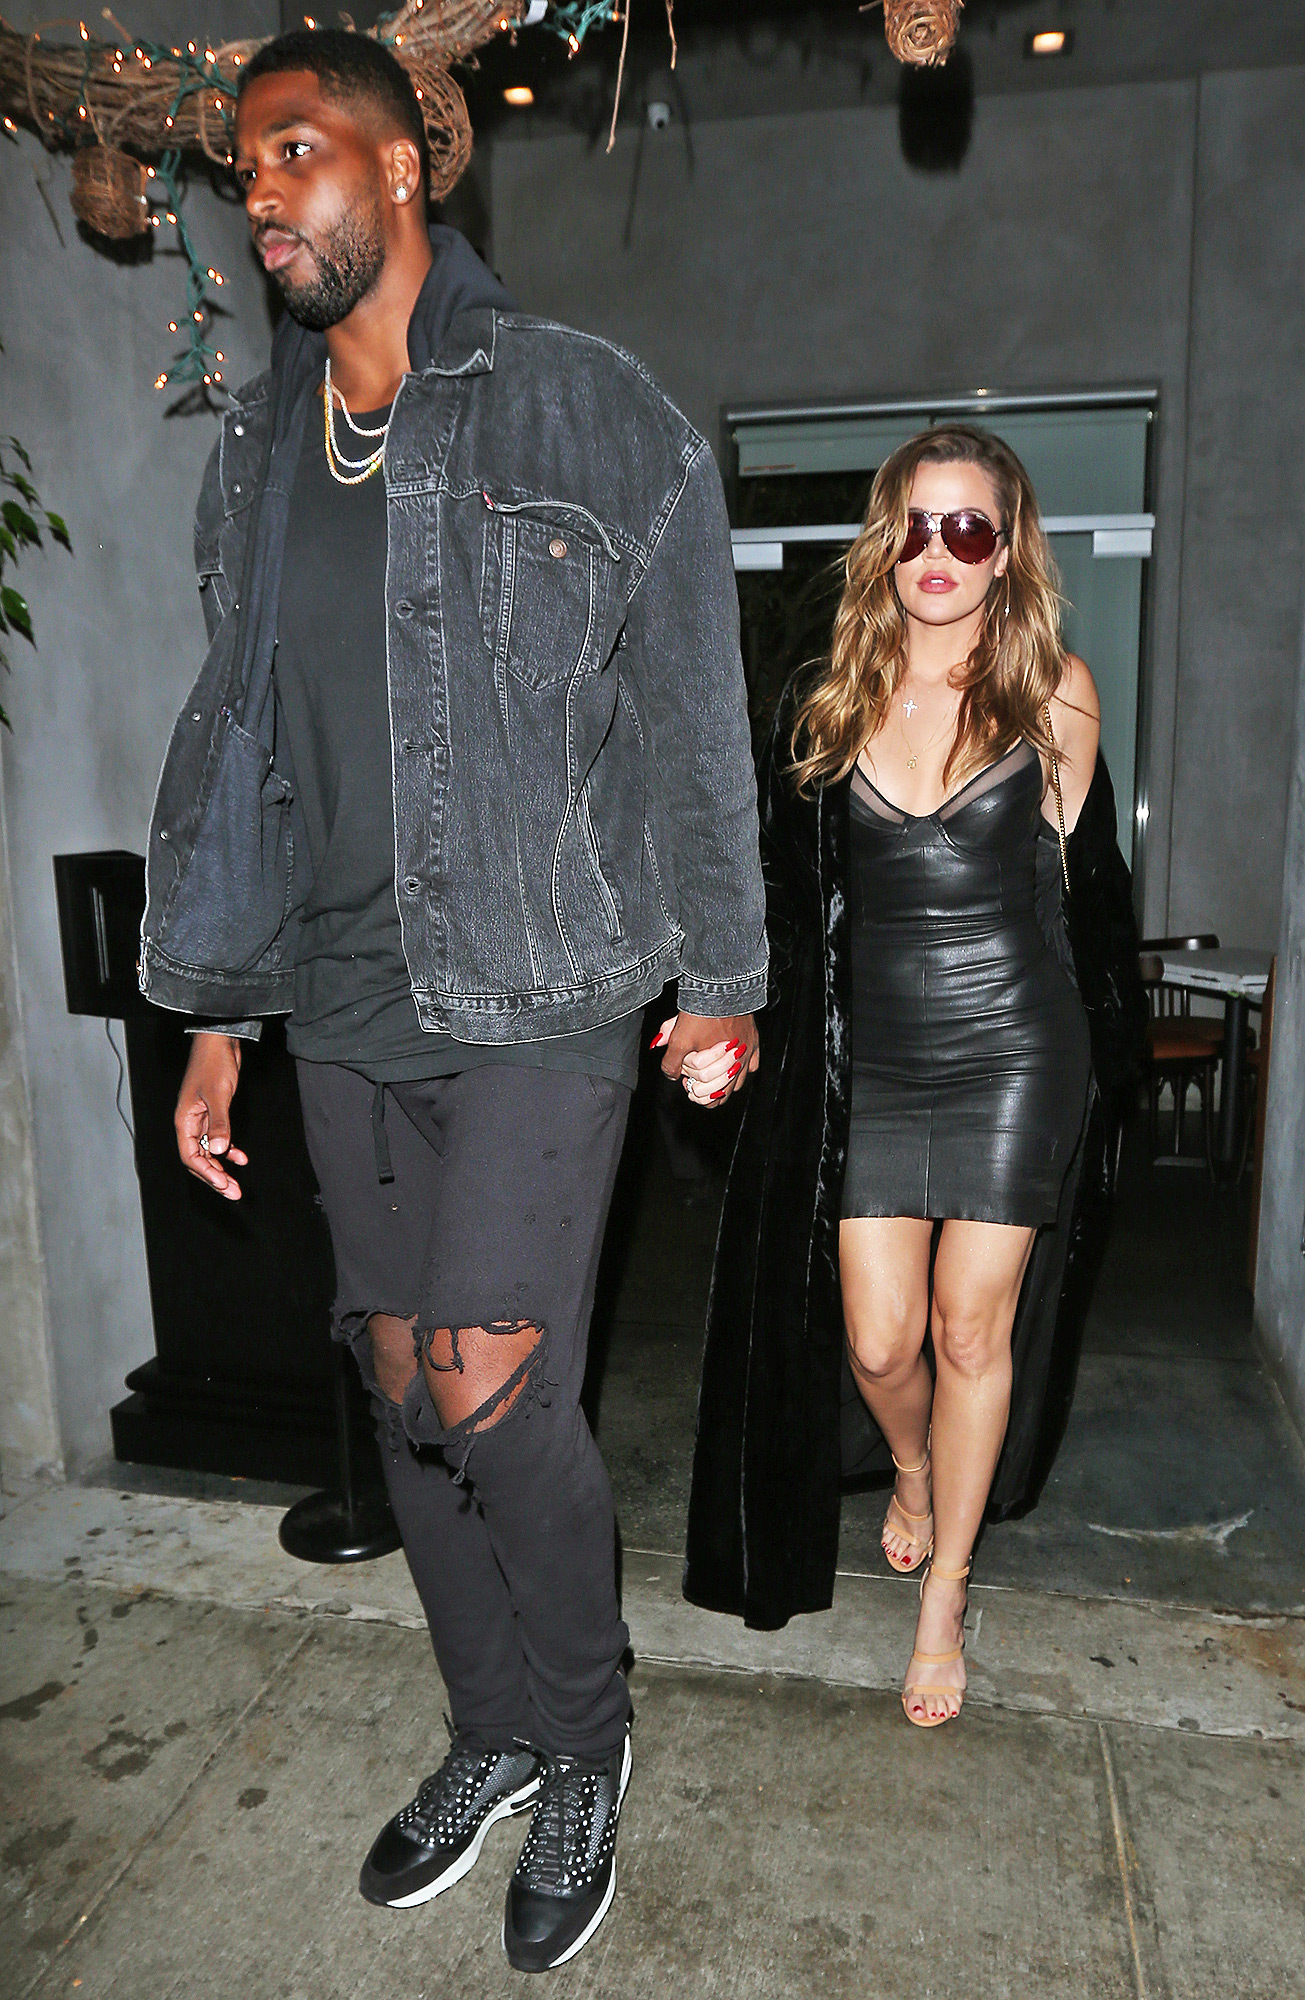 EXCLUSIVE: KhloÈ Kardashian wears a black leather dress with a long robe as she and Tristan Thompson have a romantic dinner at Il Pastaio restaurant